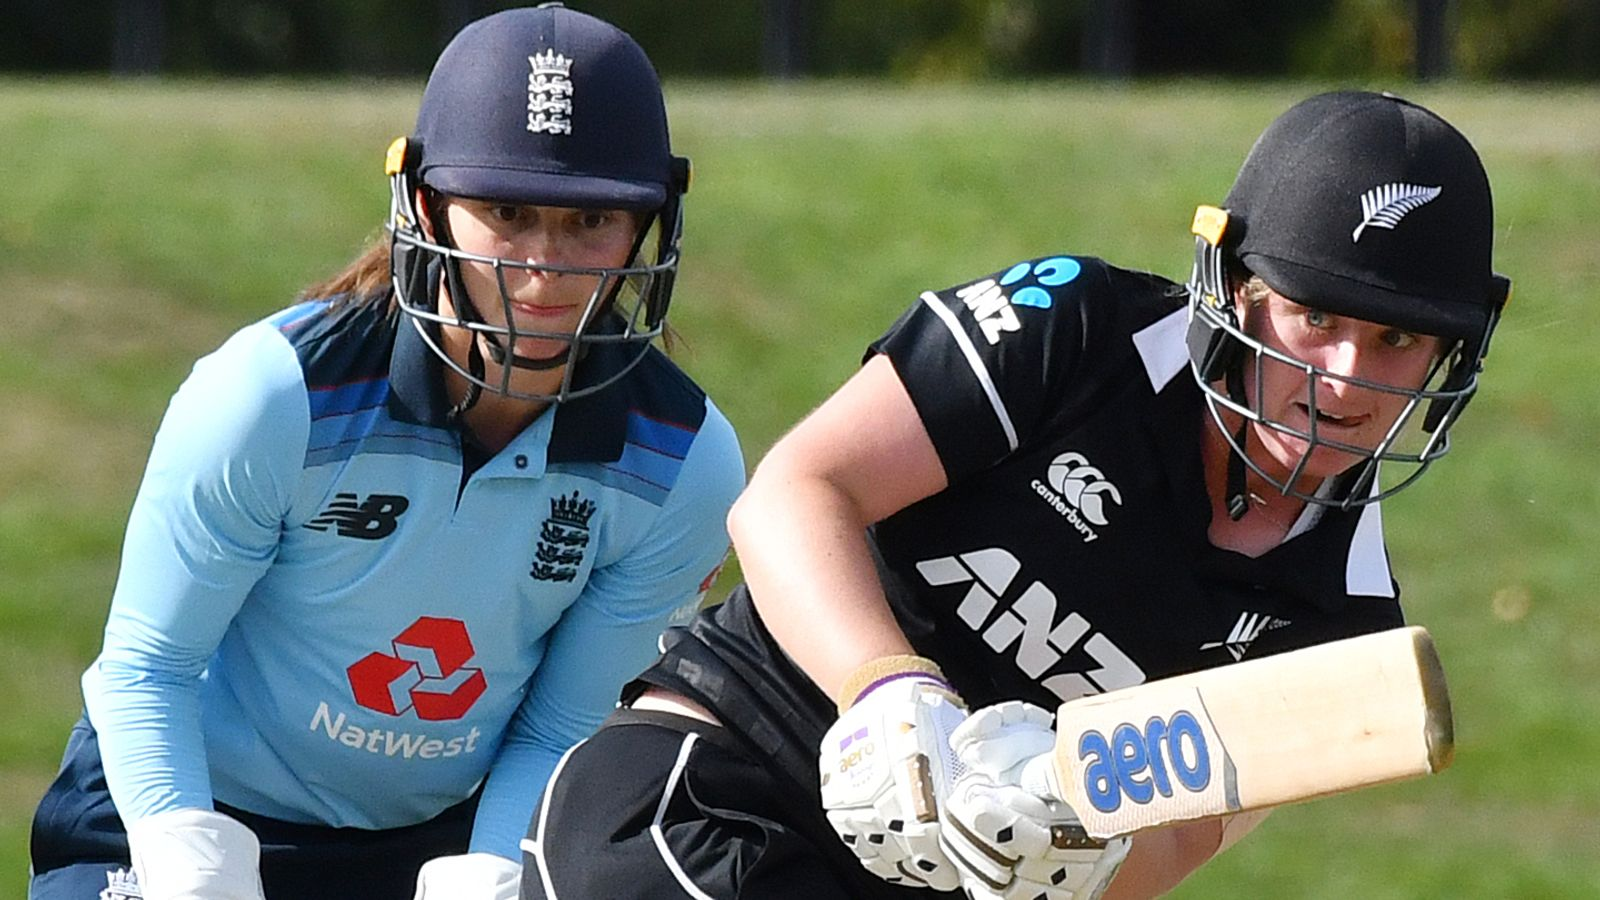 England Women: First two matches of T20 series against New Zealand to be held behind closed doors